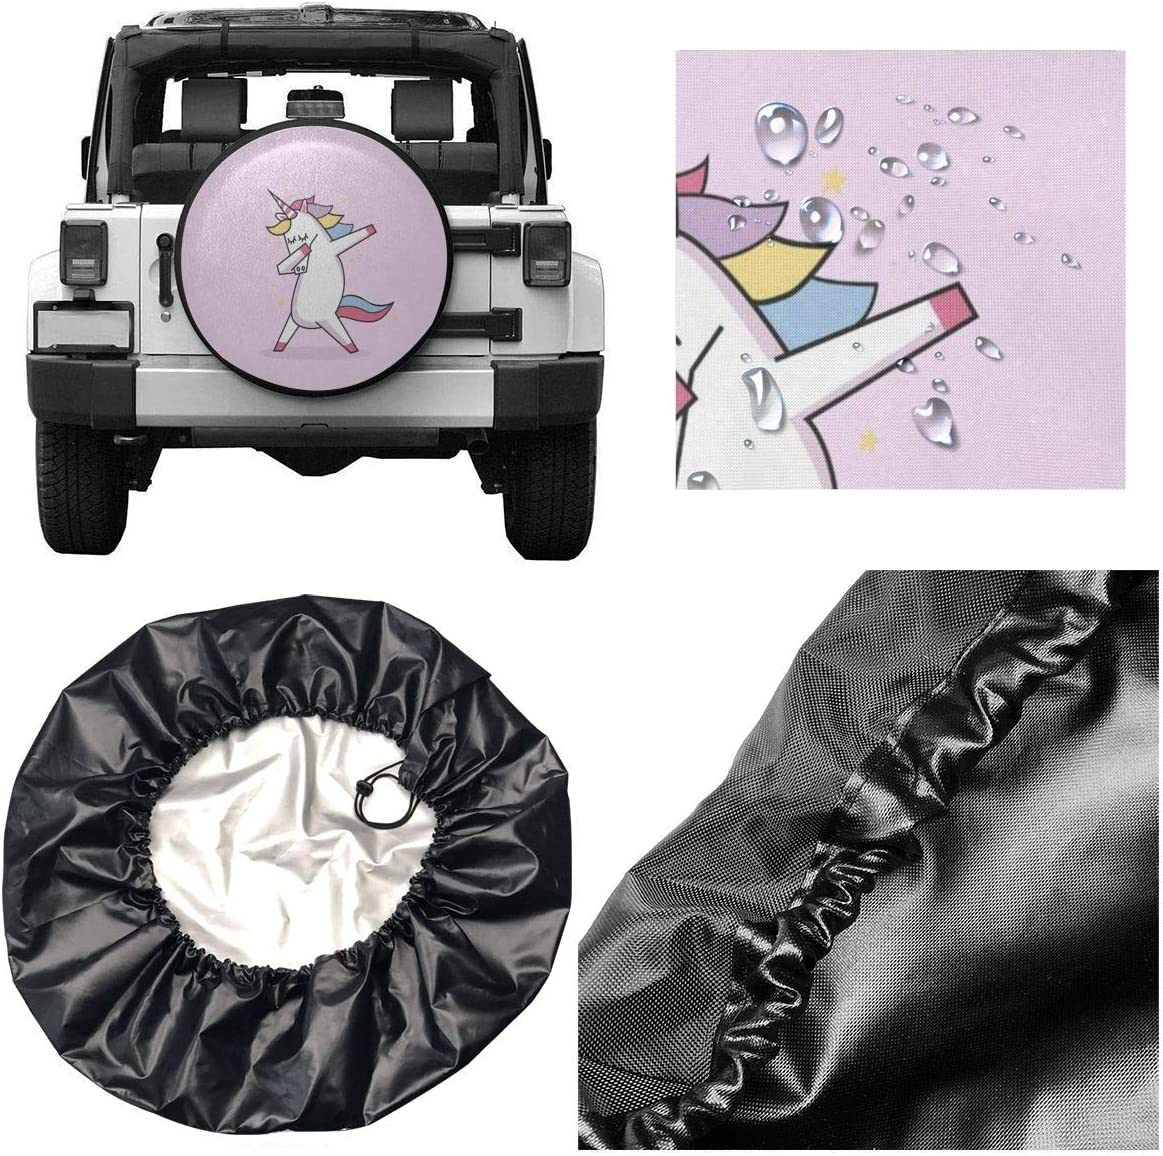 Dirt RV and Corrosion Fit for Car,Trailer All agree Spare Tire Cover Pink Dabbing Unicorn Weatherproof Wheel Cover Protects Tires from Sun SUV and Many Vehicle